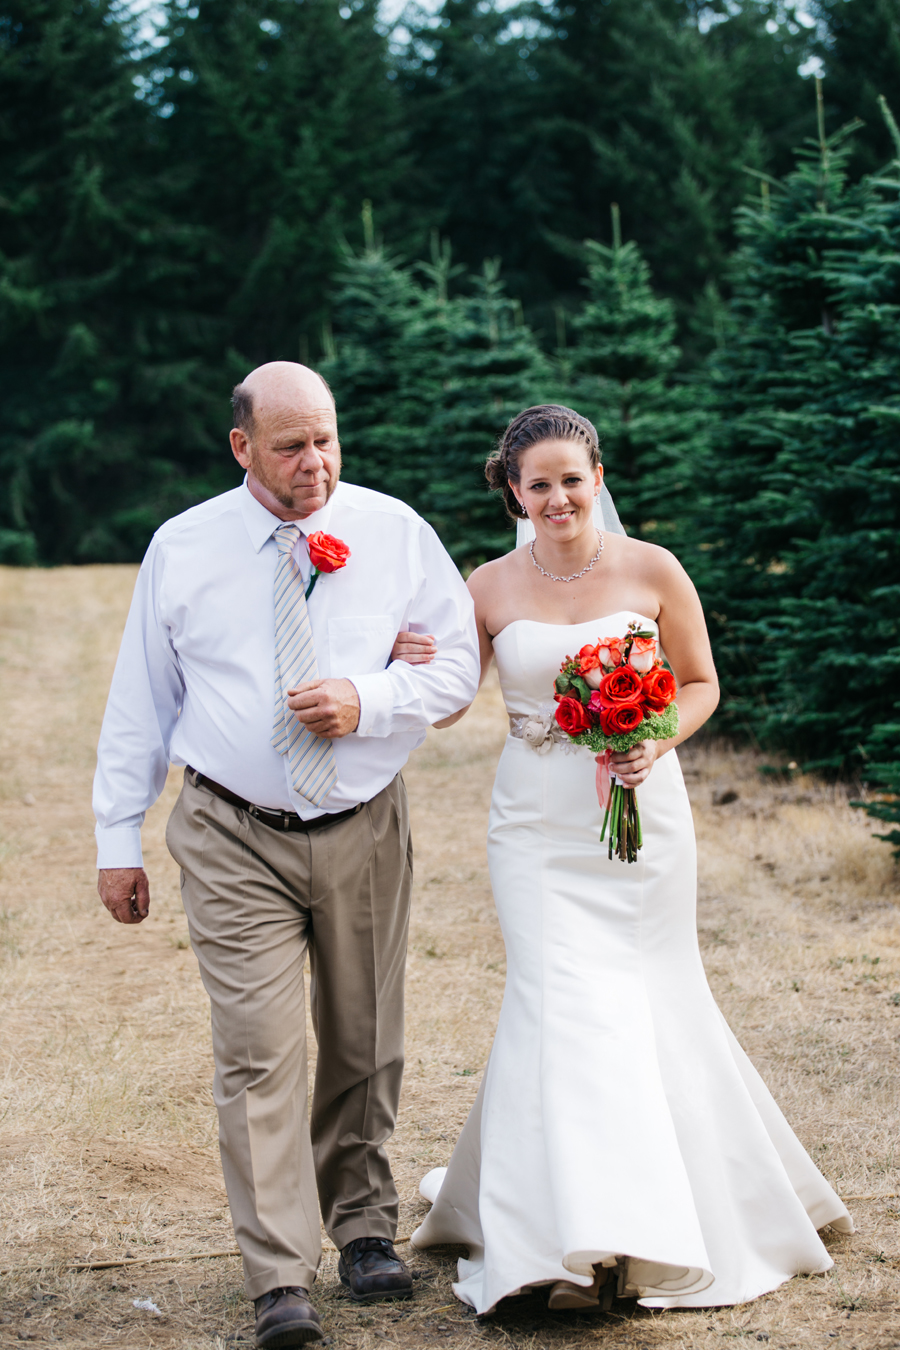 075-portland-oregon-silverton-tree-farm-wedding-katheryn-moran-photography.jpg